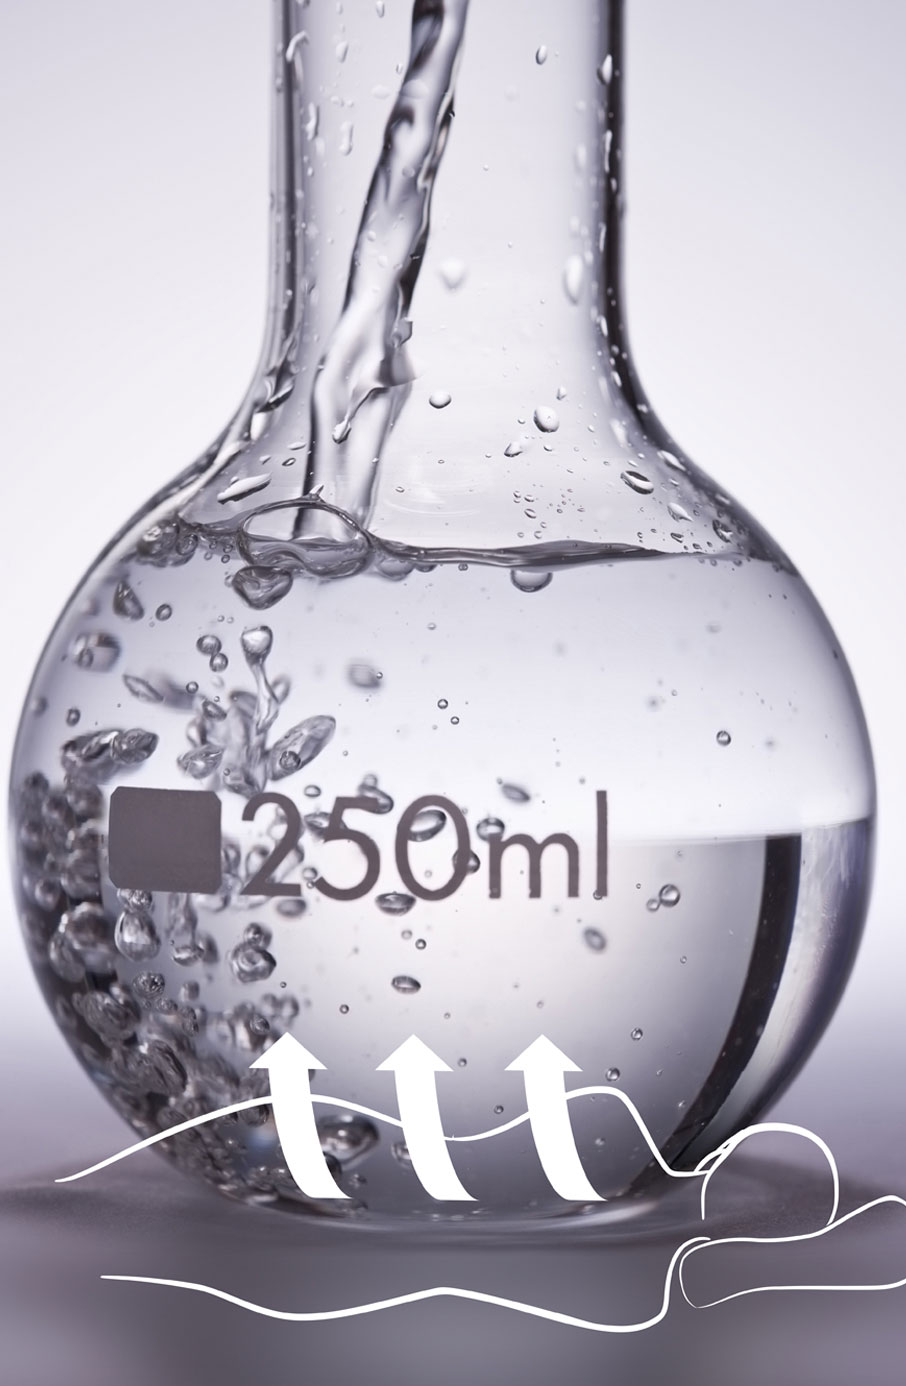 Your-body-releases-200-500-ml-water-while-you-sleep